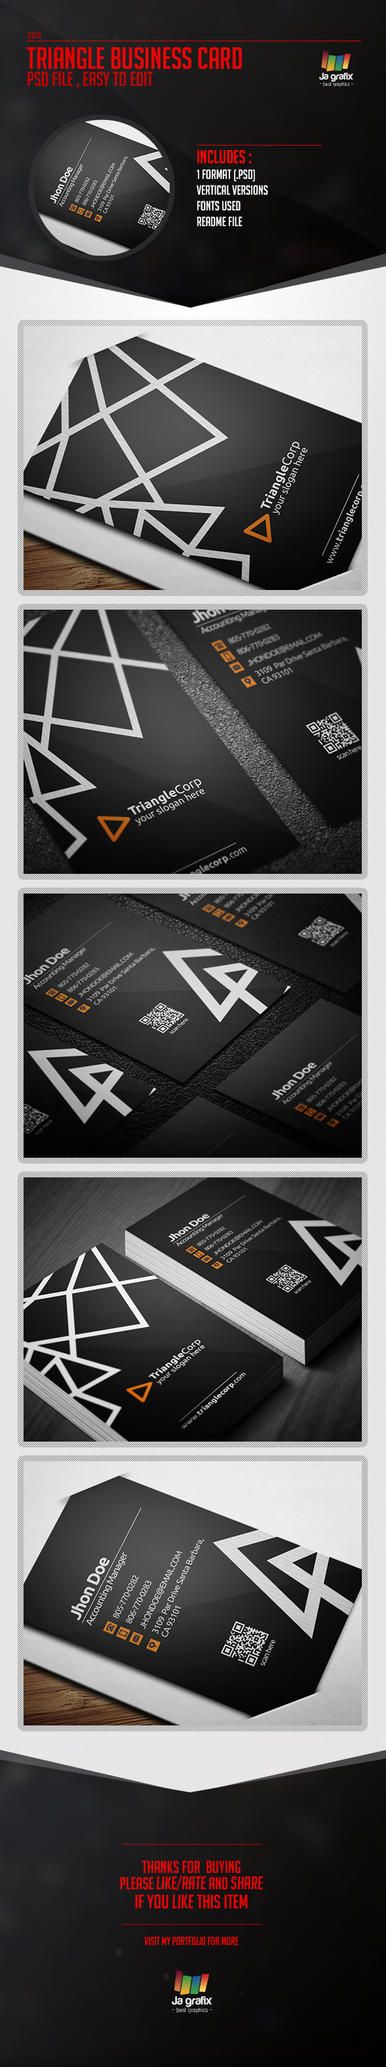 Triangle Business Card [Psd] by Ja-Ghraphics